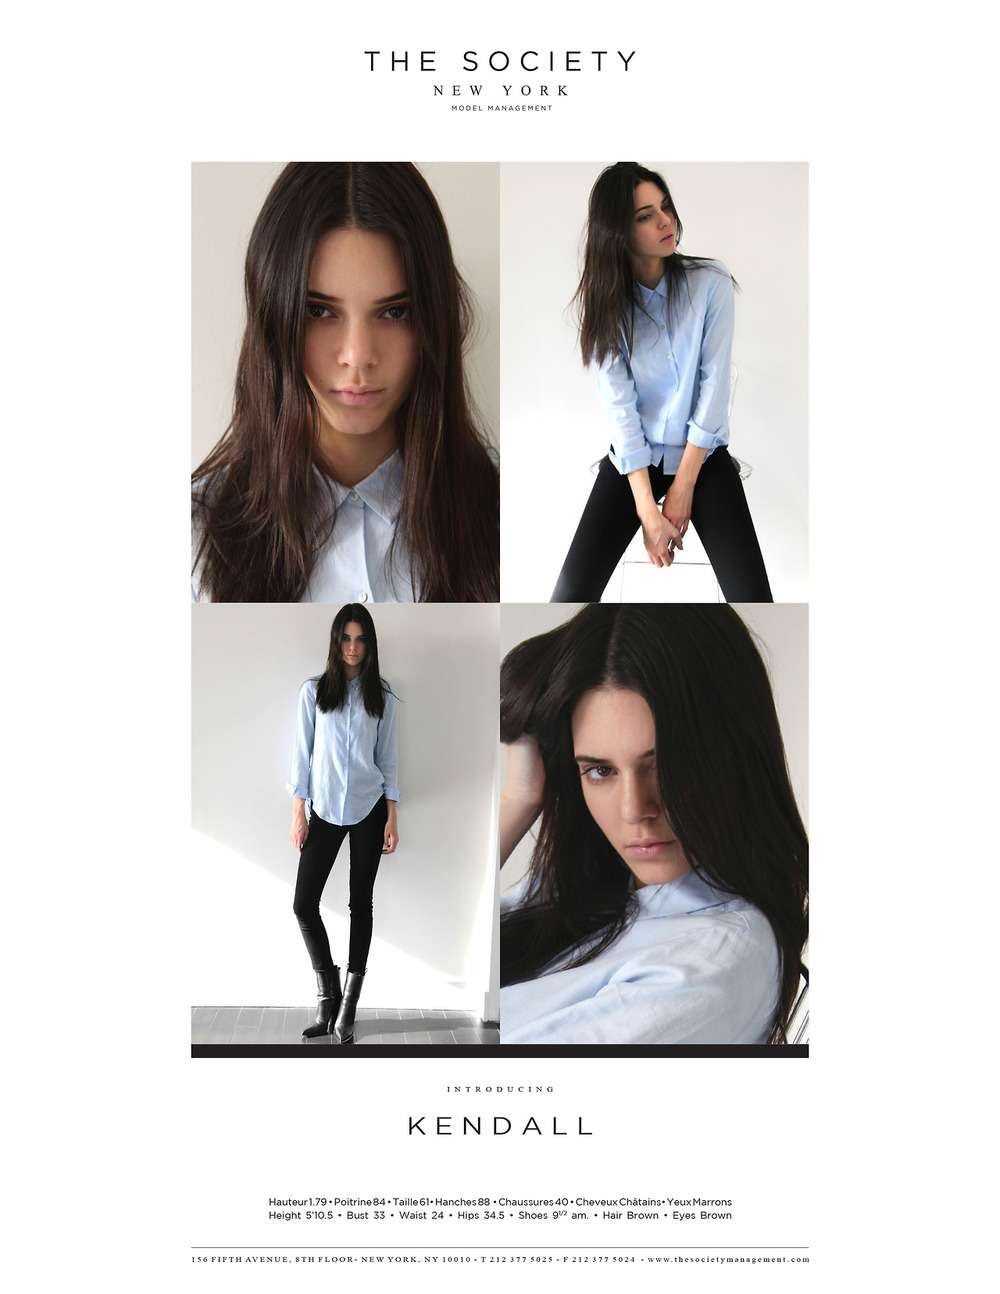 Kendall Jenner's  modeling composite card with  The Society .